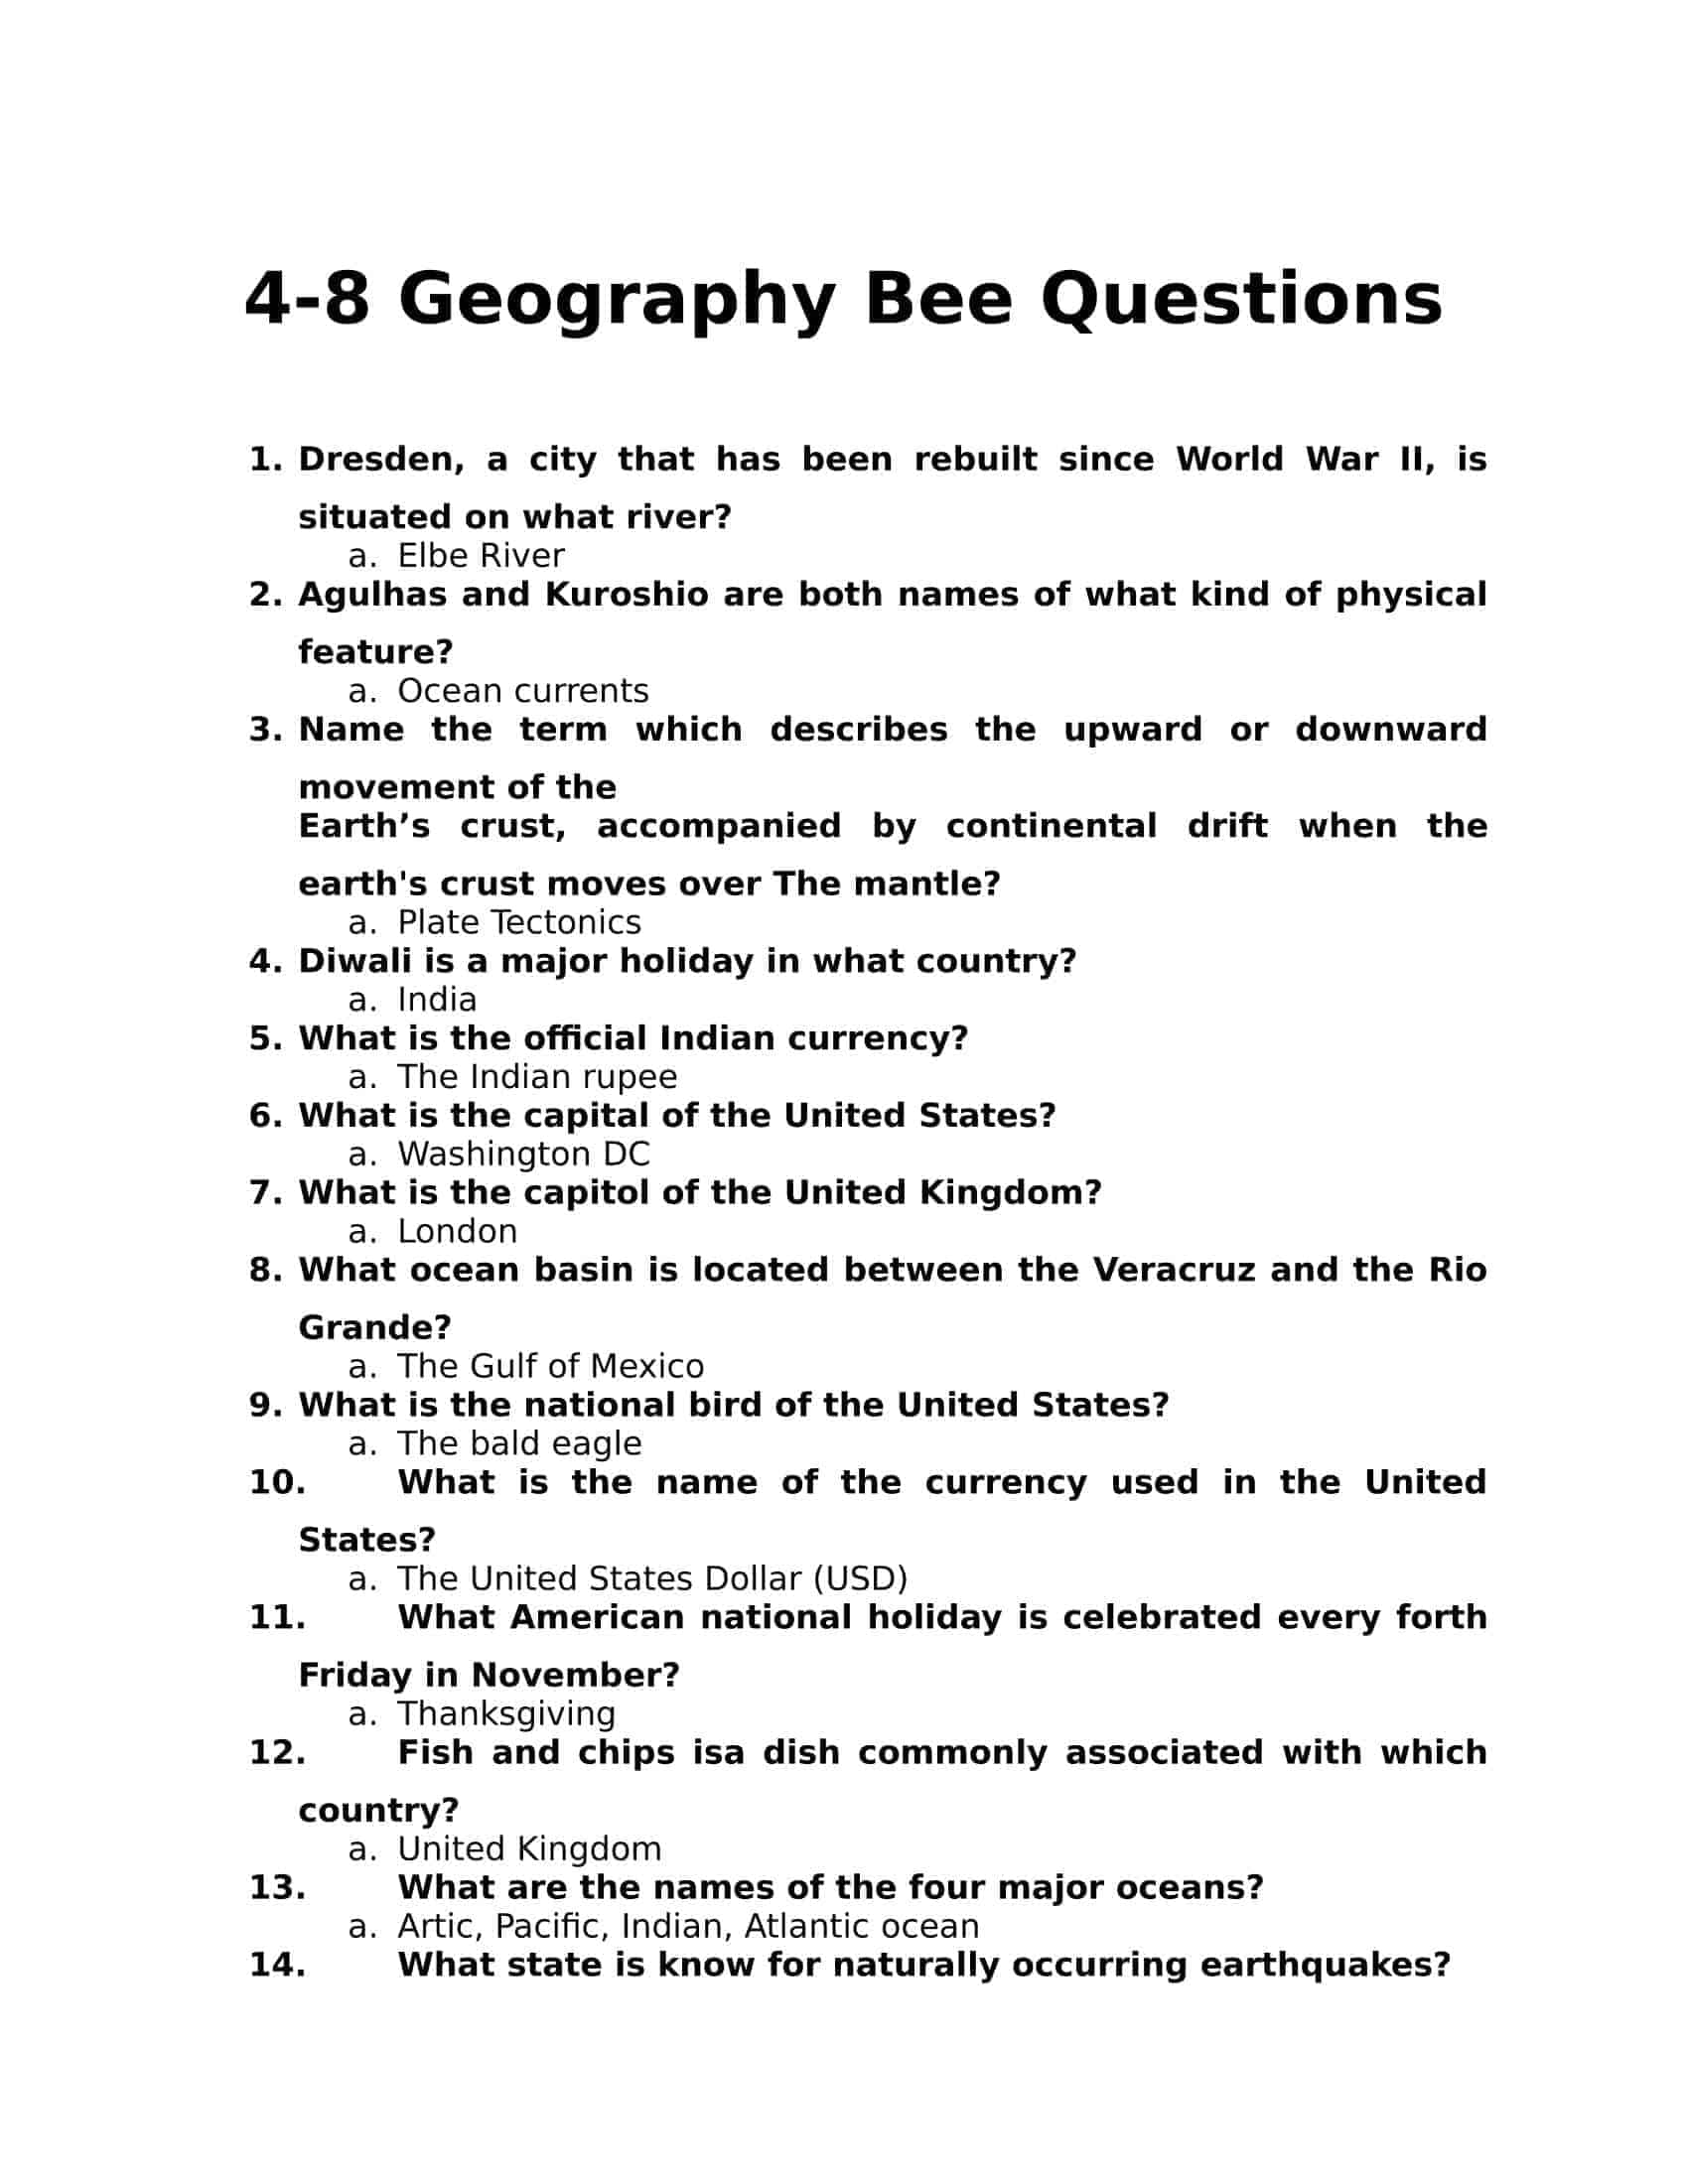 4-8 Grade Geography Bee